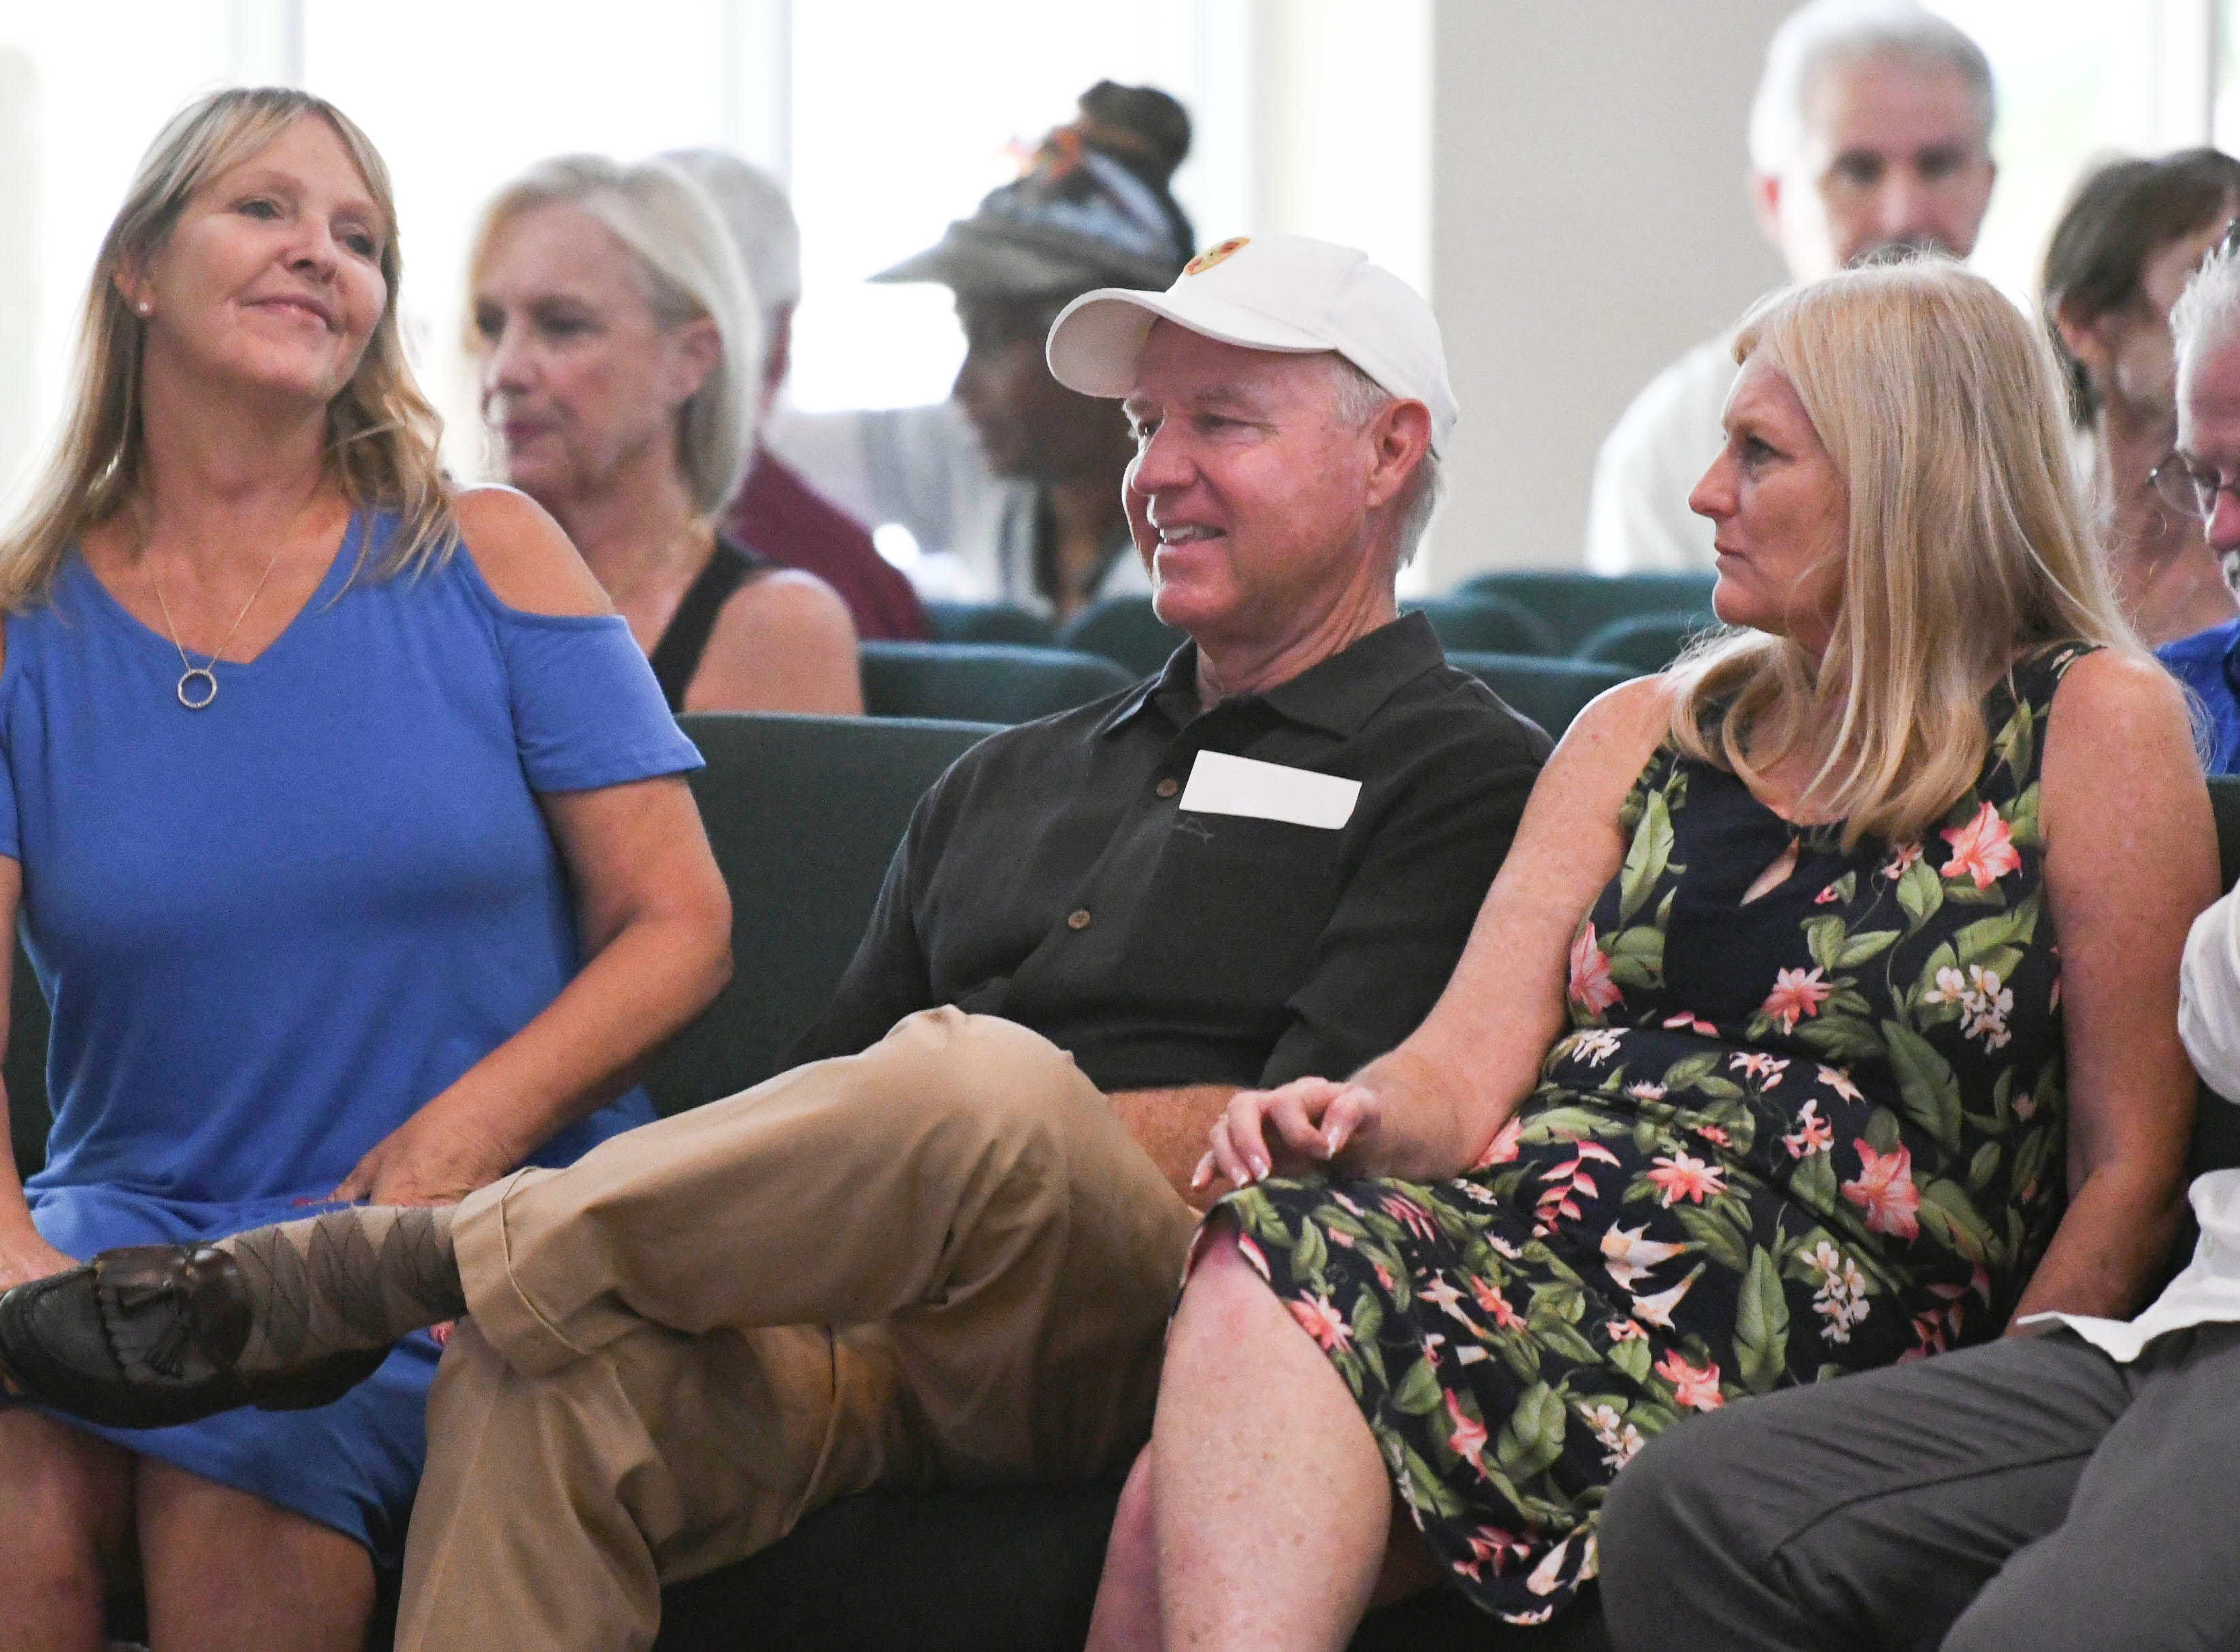 Residents listen to environmental activist Erin Brockovich and her associate Bob Bowcock as they talk during a town hall at Kingdom Gate Worship Center.